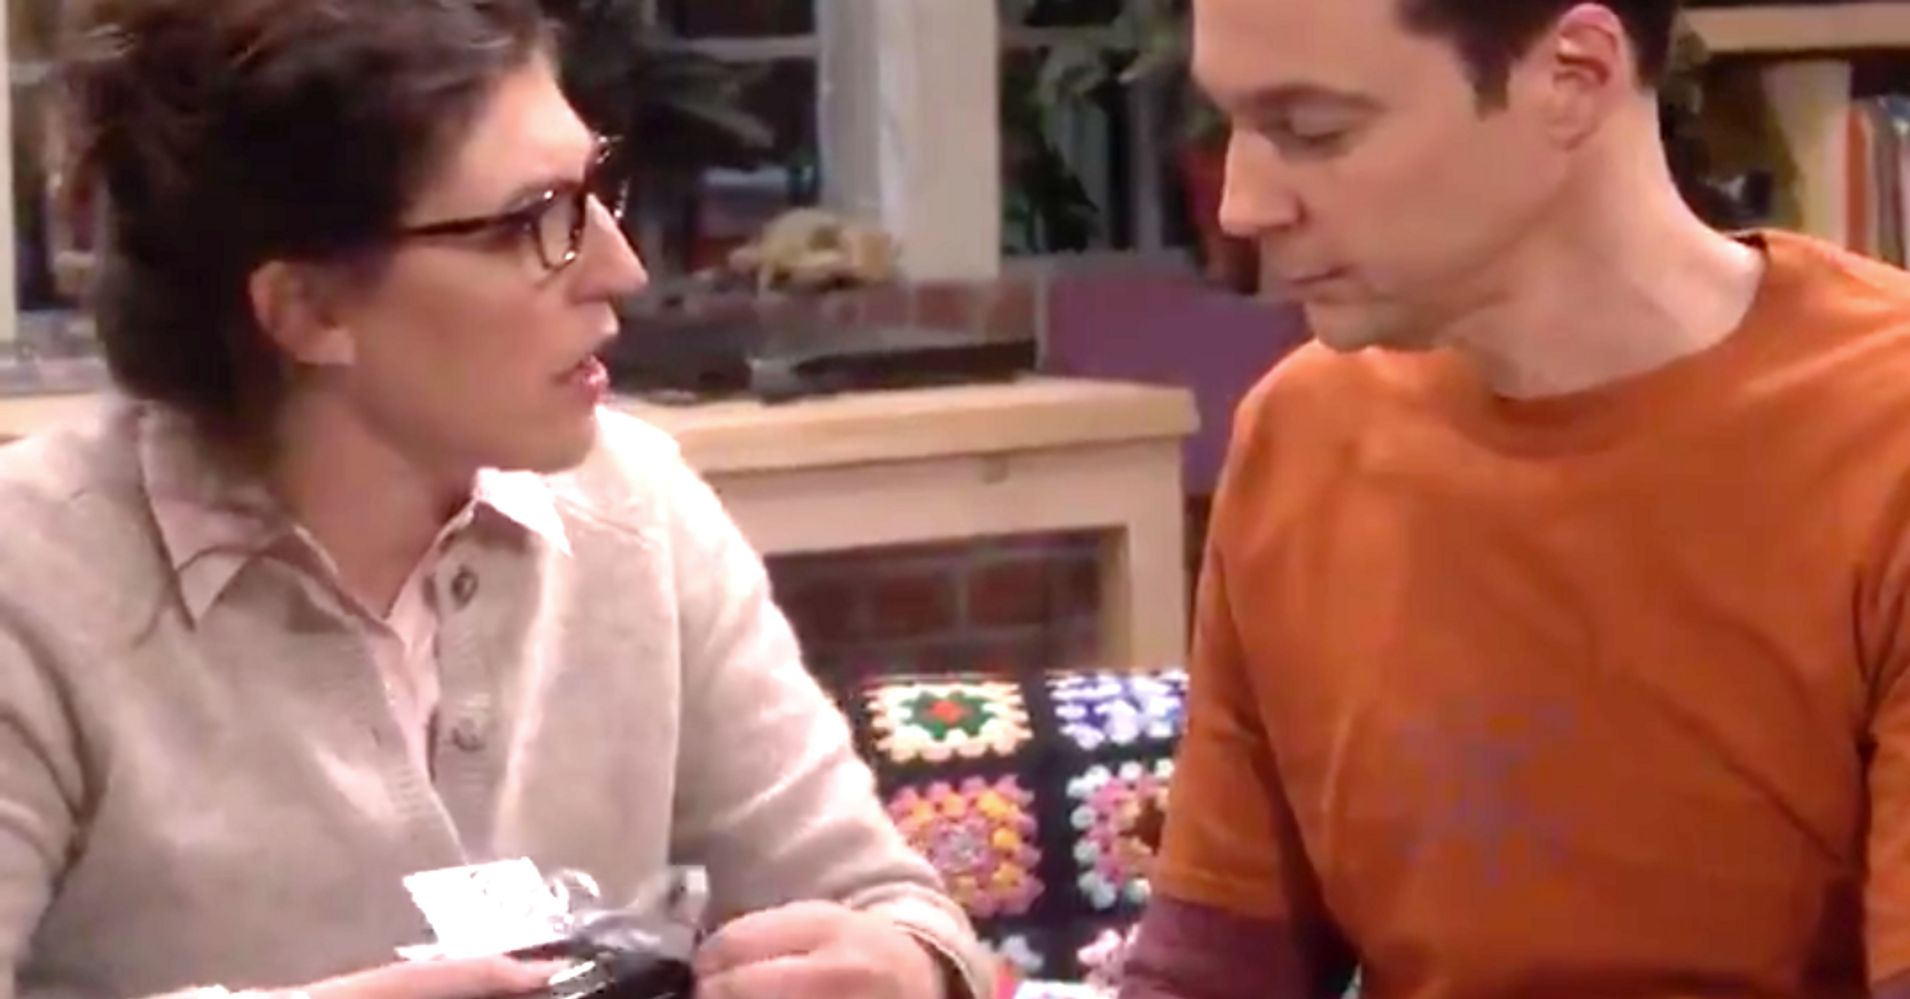 'The Big Bang Theory' Pays Sweetest Tribute To Stephen Hawking In Deleted Scene | HuffPost